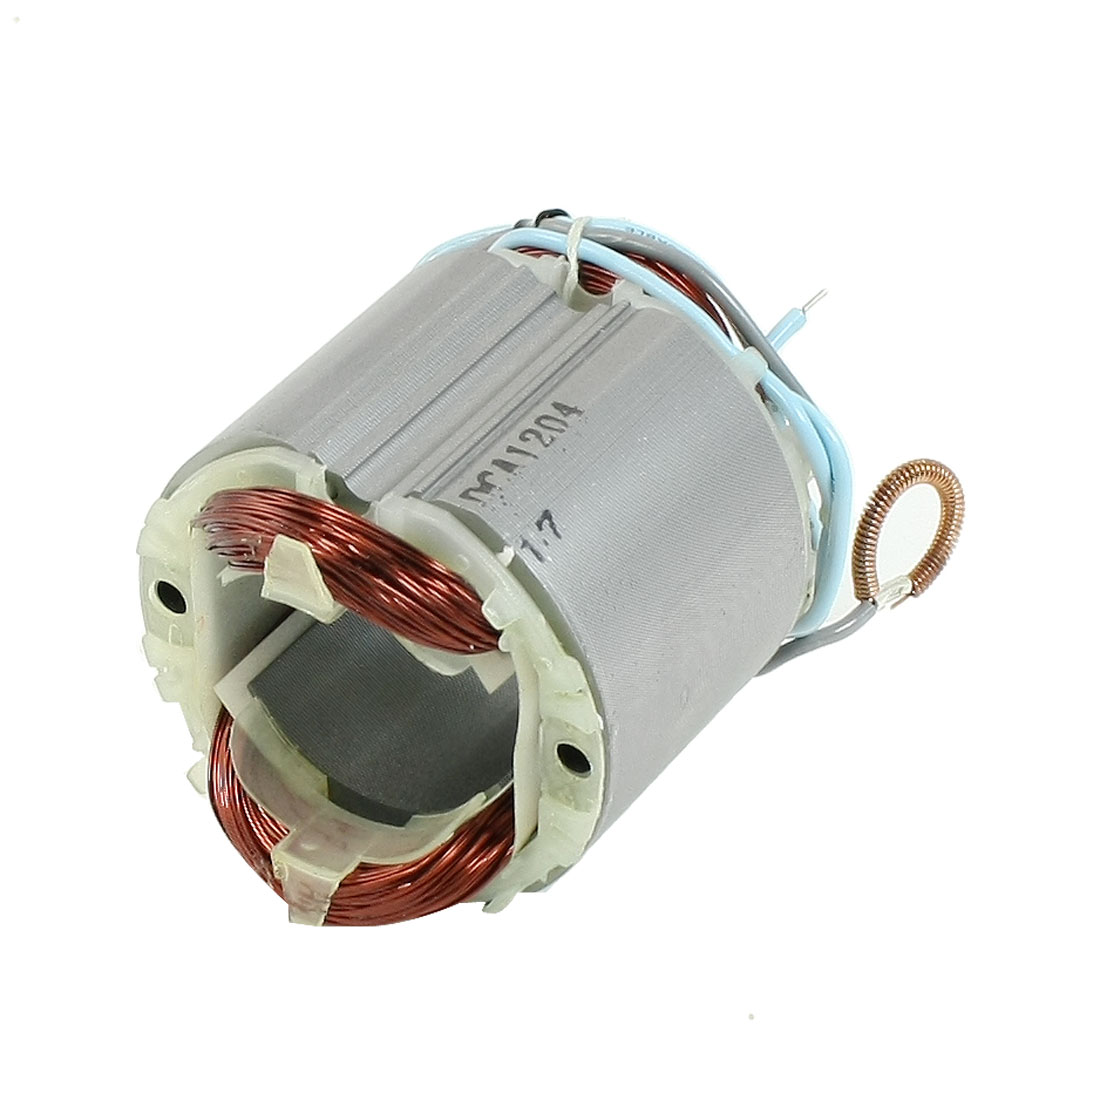 AC220V Stainless Steel Shell 4 Cables Electric Hammer Stator for Hitachi FF03-180